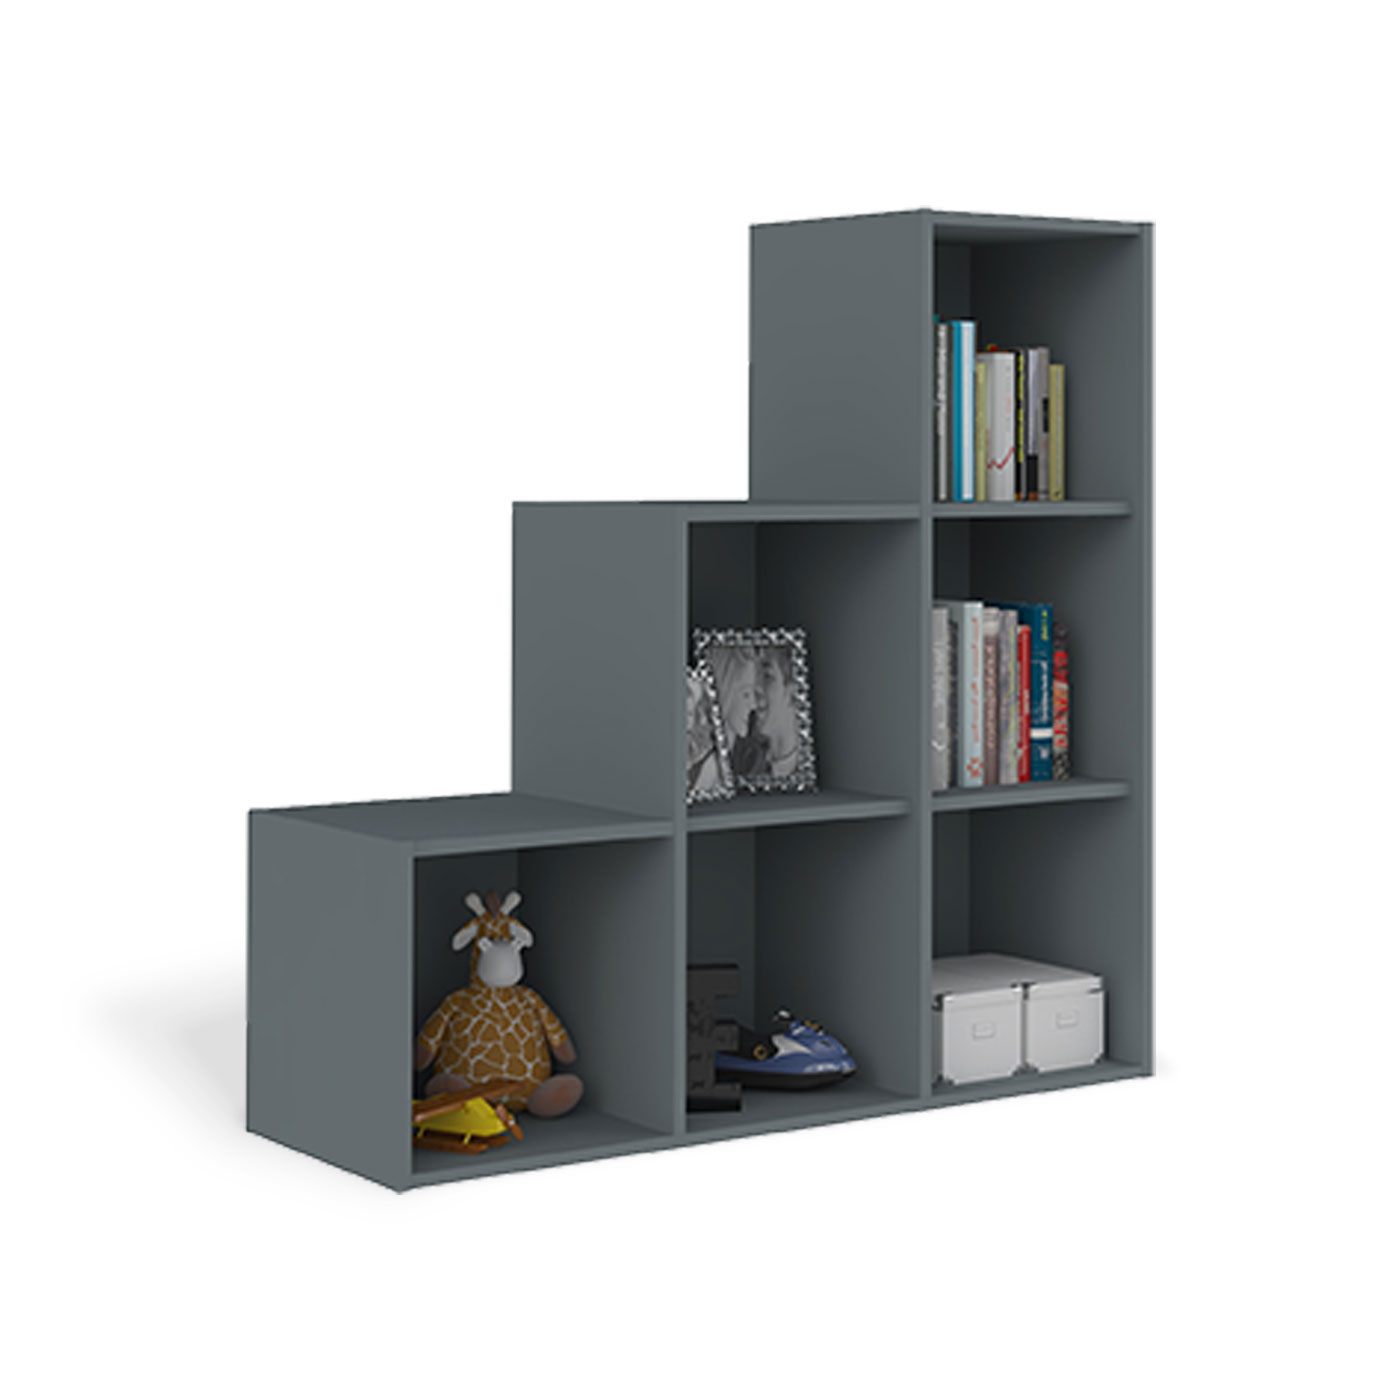 casiers metalliques de rangement vinco module de bureau tiroirs gris anthracite with casiers. Black Bedroom Furniture Sets. Home Design Ideas